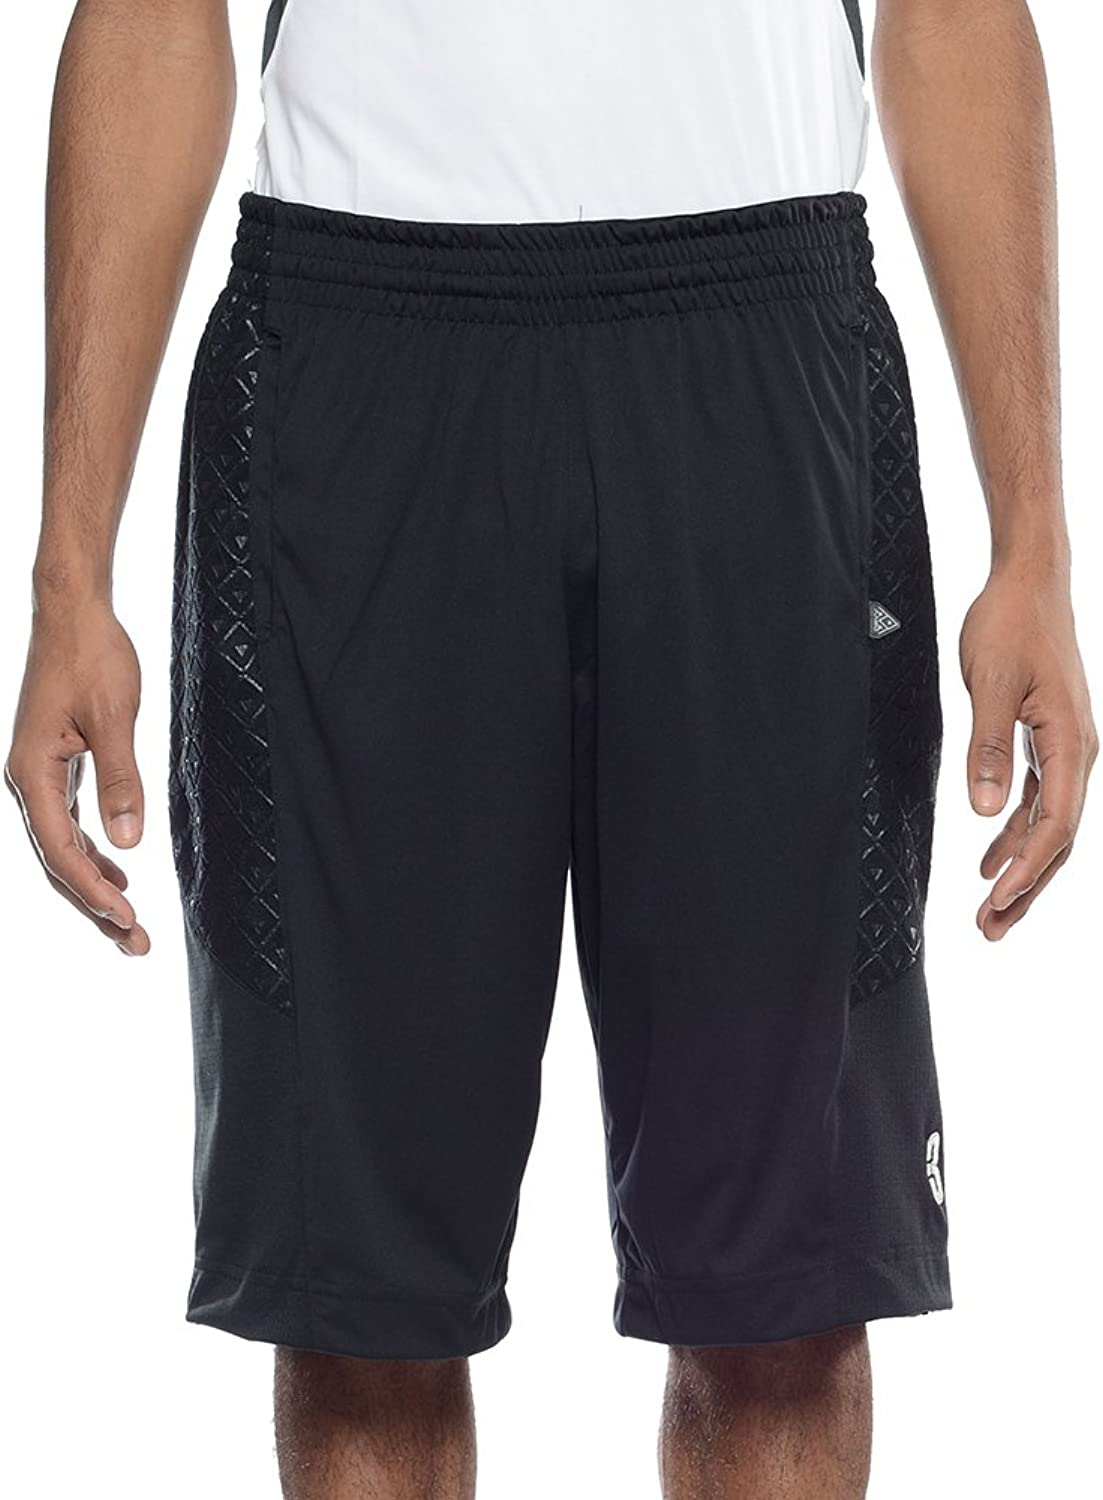 Point 3 DRYV Baller 2.0 Menfs Dry Hand Zone Basketball Shorts